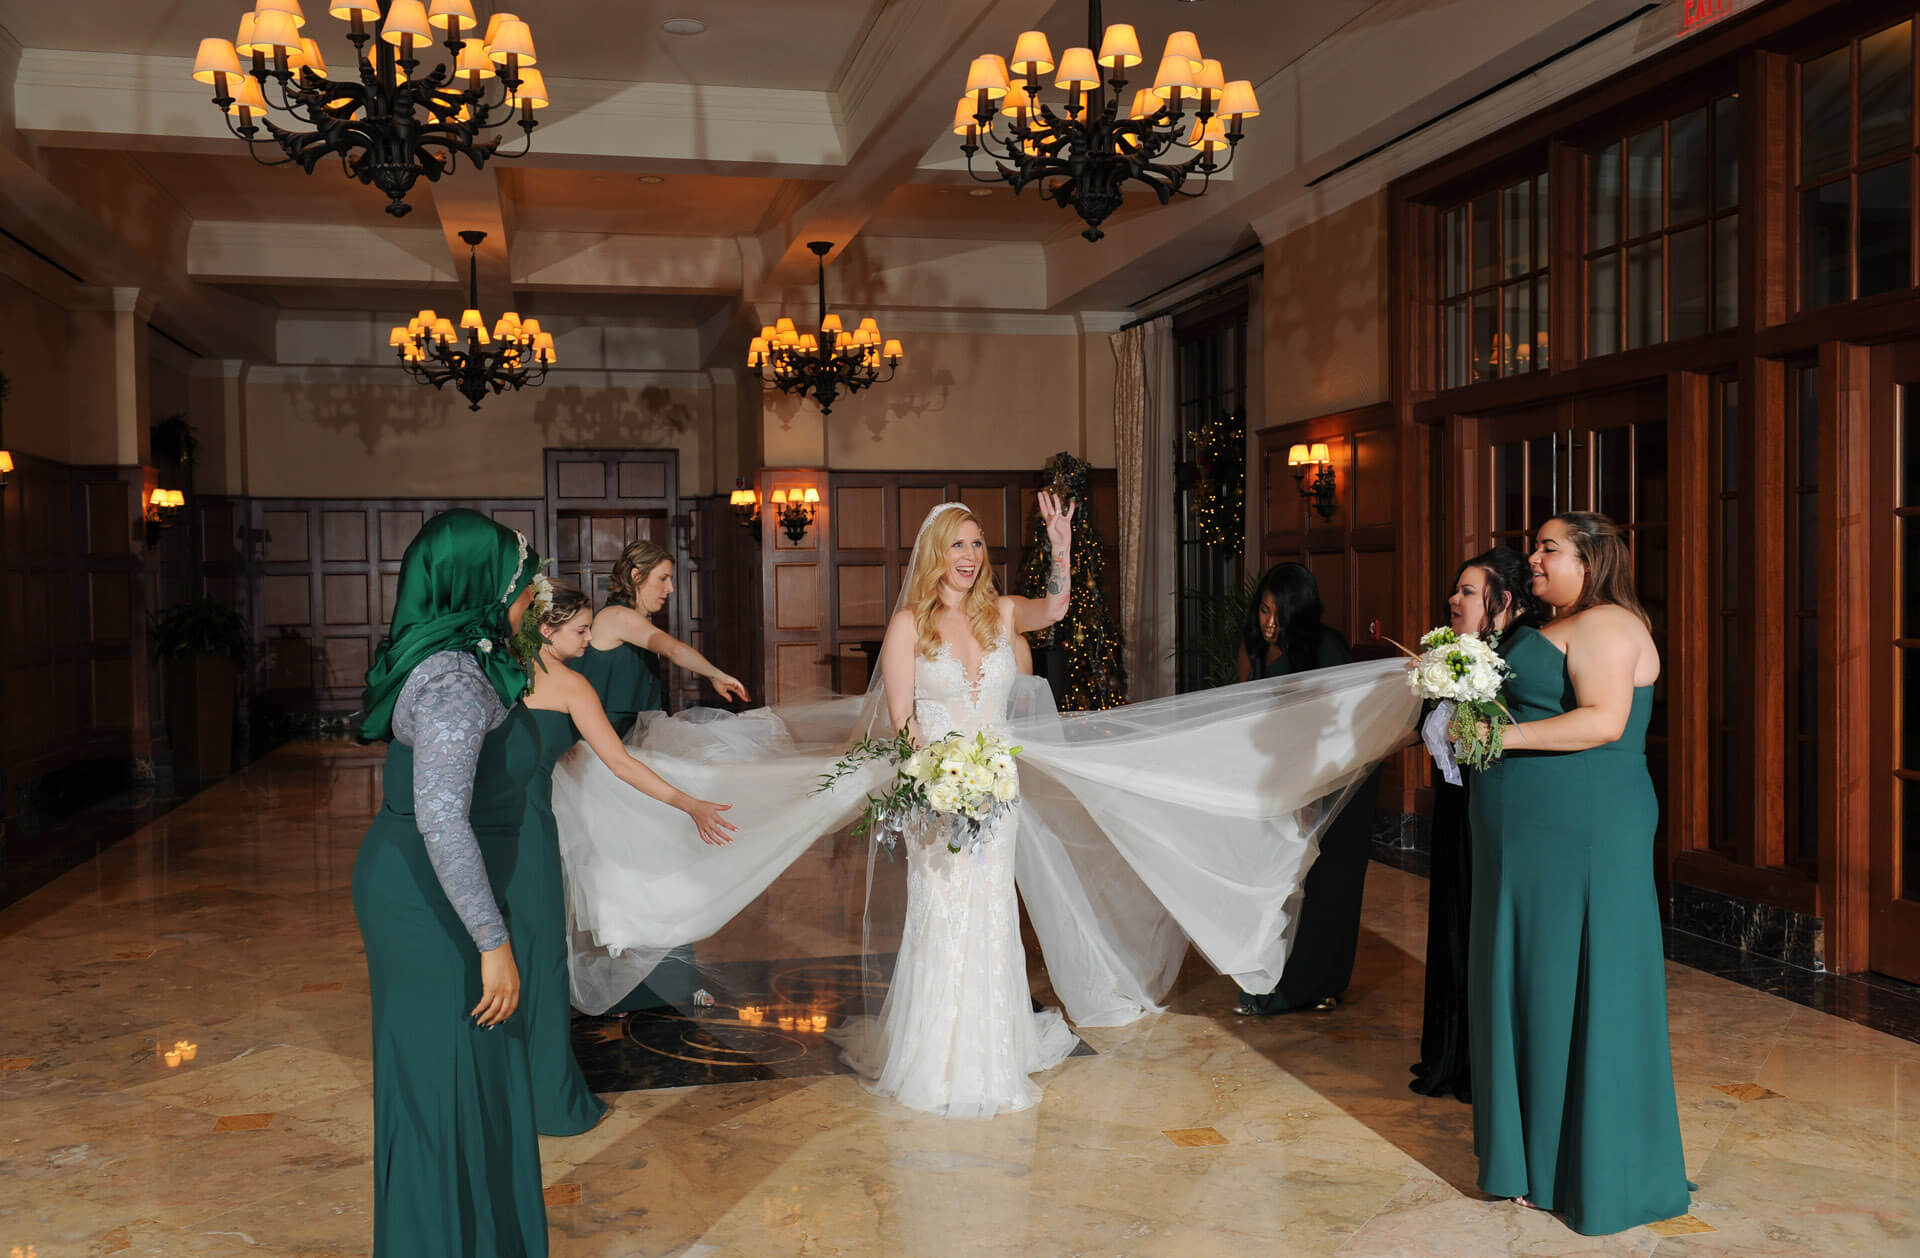 Candid wedding photography showing the bride waving to guests while bridesmaids adjust her dress before a wedding at the Royal Park Hotel in Rochester, Michigan.